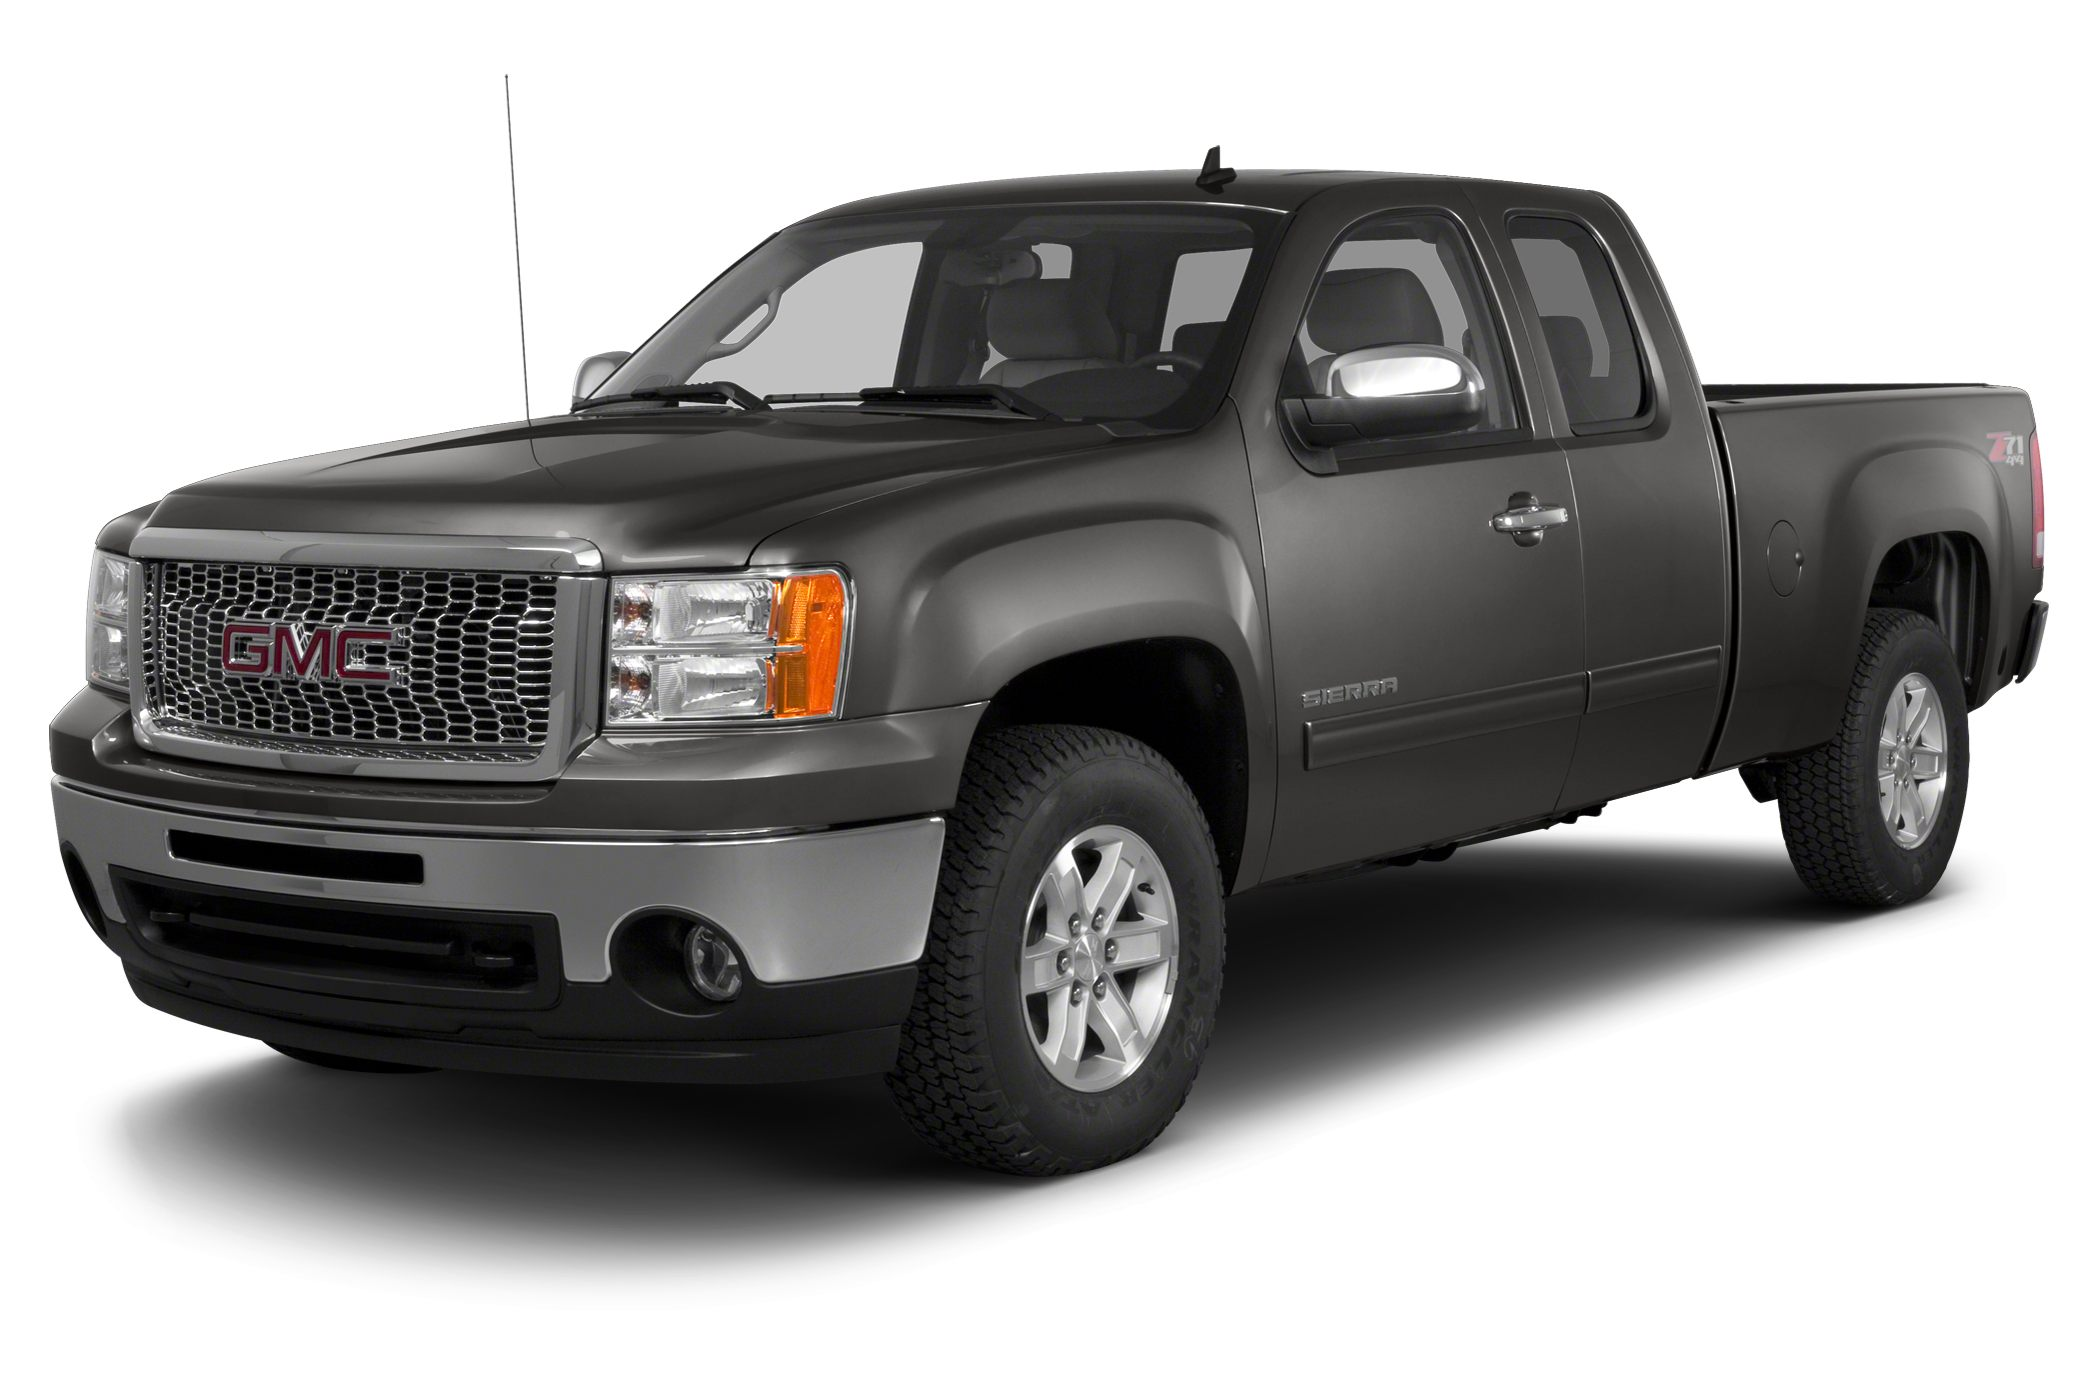 2013 chevrolet silverado 1500 ltz 4x4 extended cab 8 ft box 157 5. Black Bedroom Furniture Sets. Home Design Ideas